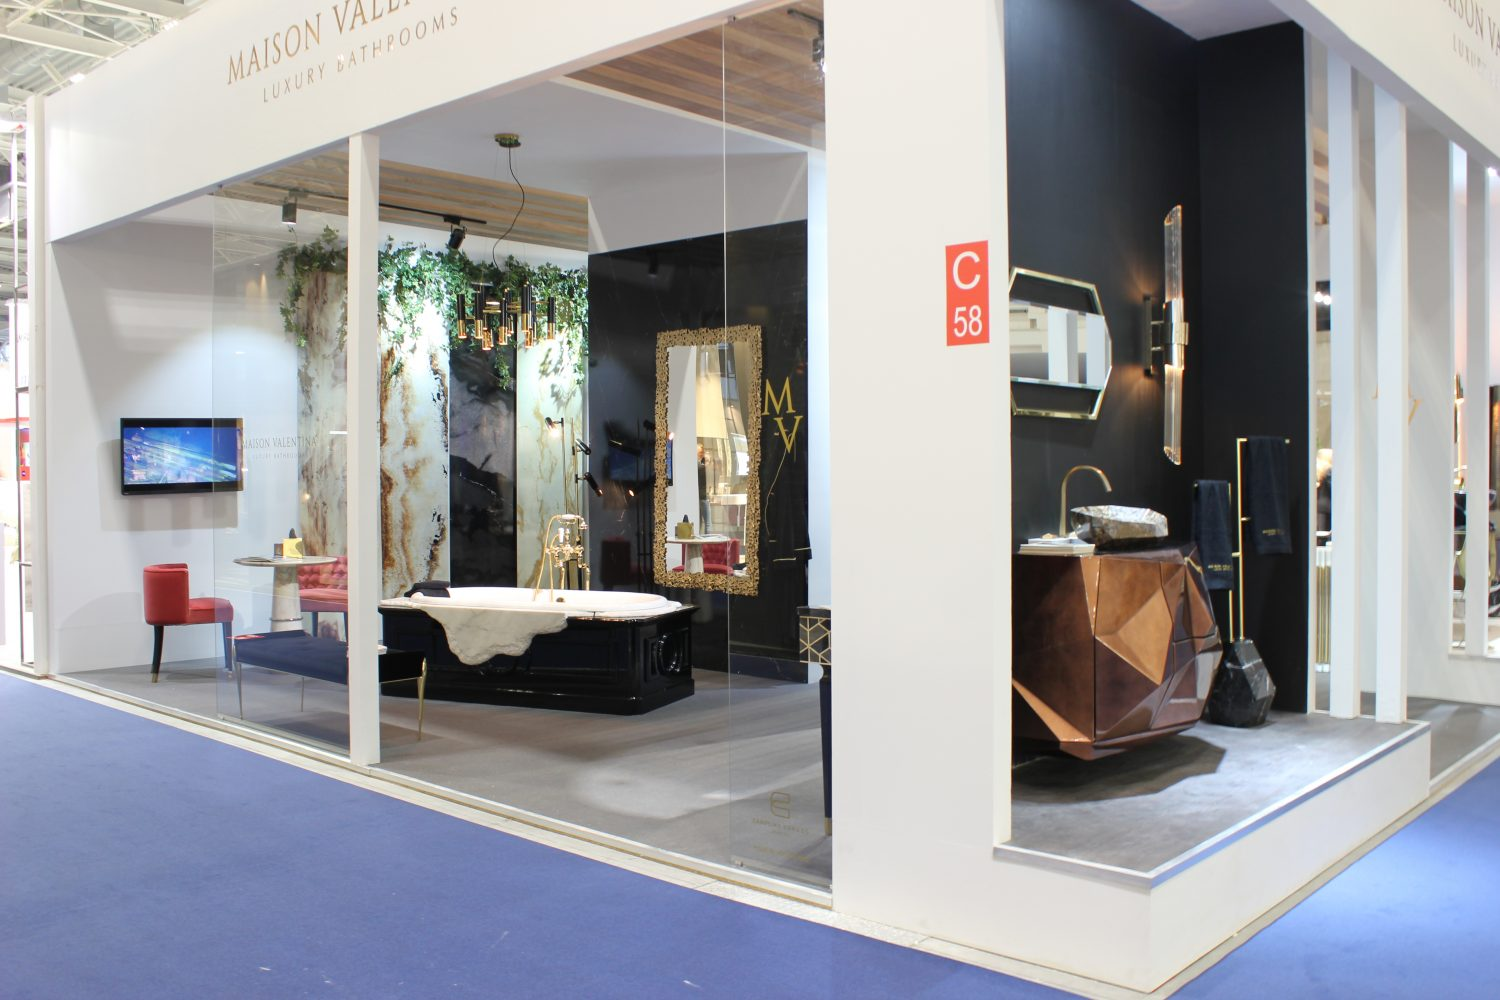 cersaie 2019 How To Decor Your Bathroom With The Best Products From Cersaie 2019 IMG 1963